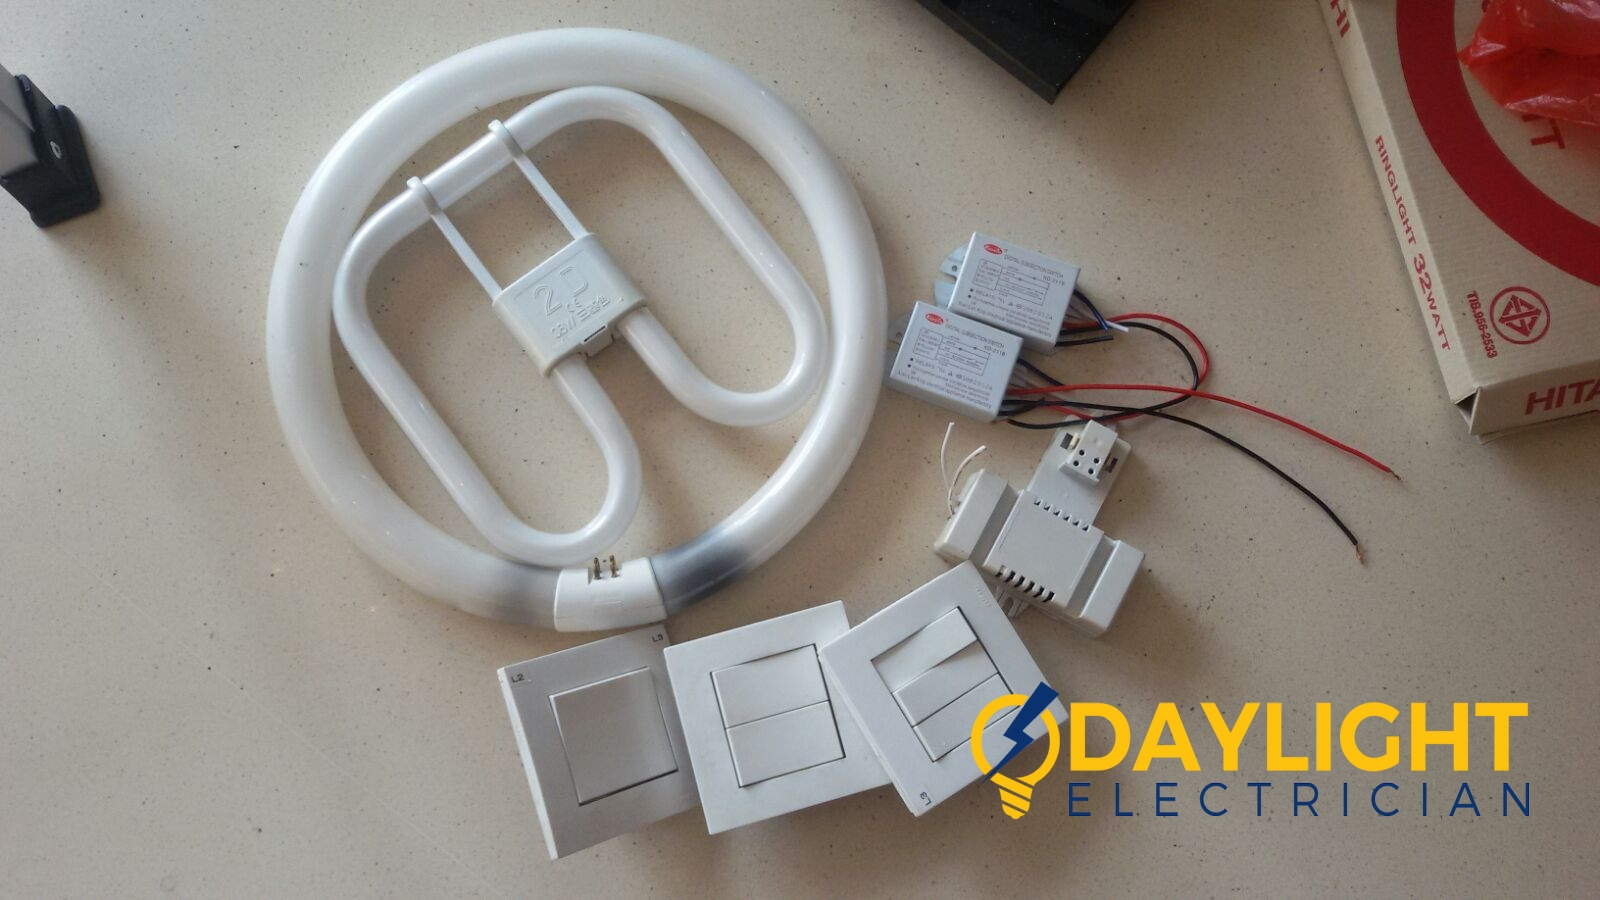 Change-light-switches-light-bulbs-electrician-singapore-landed-cashew-road-11_wm